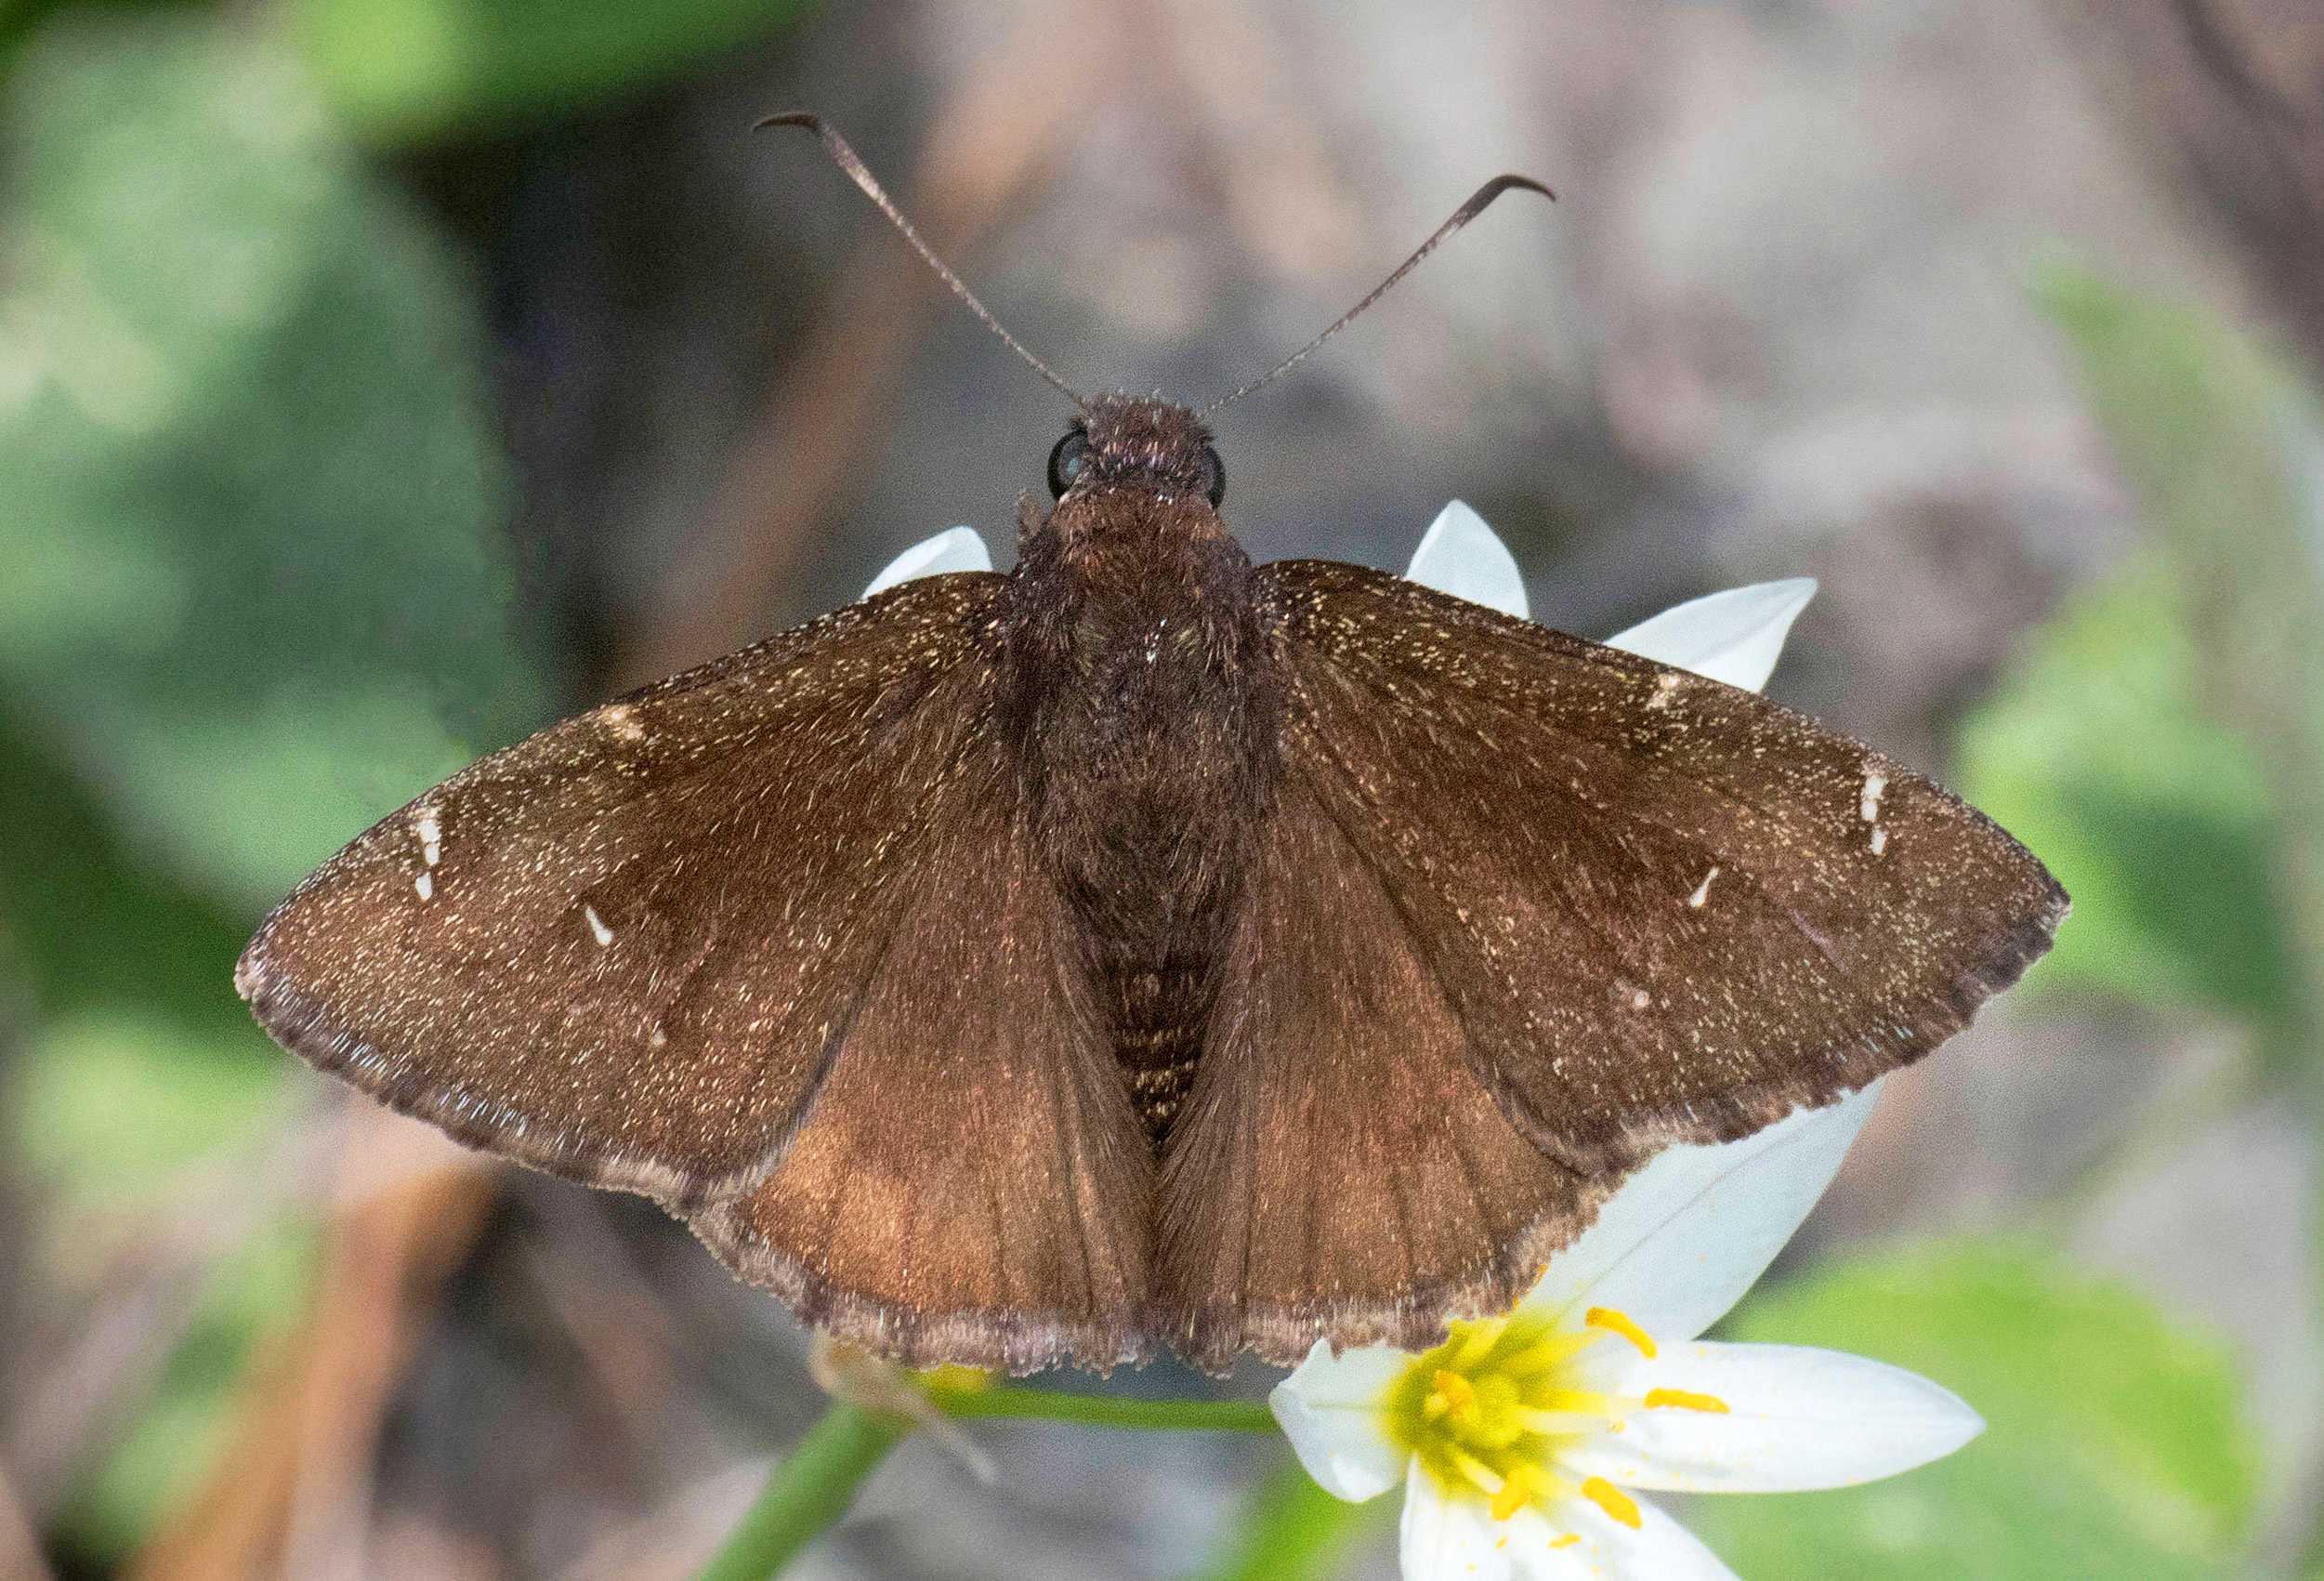 Northern Cloudywing (Cecropterus pylades)